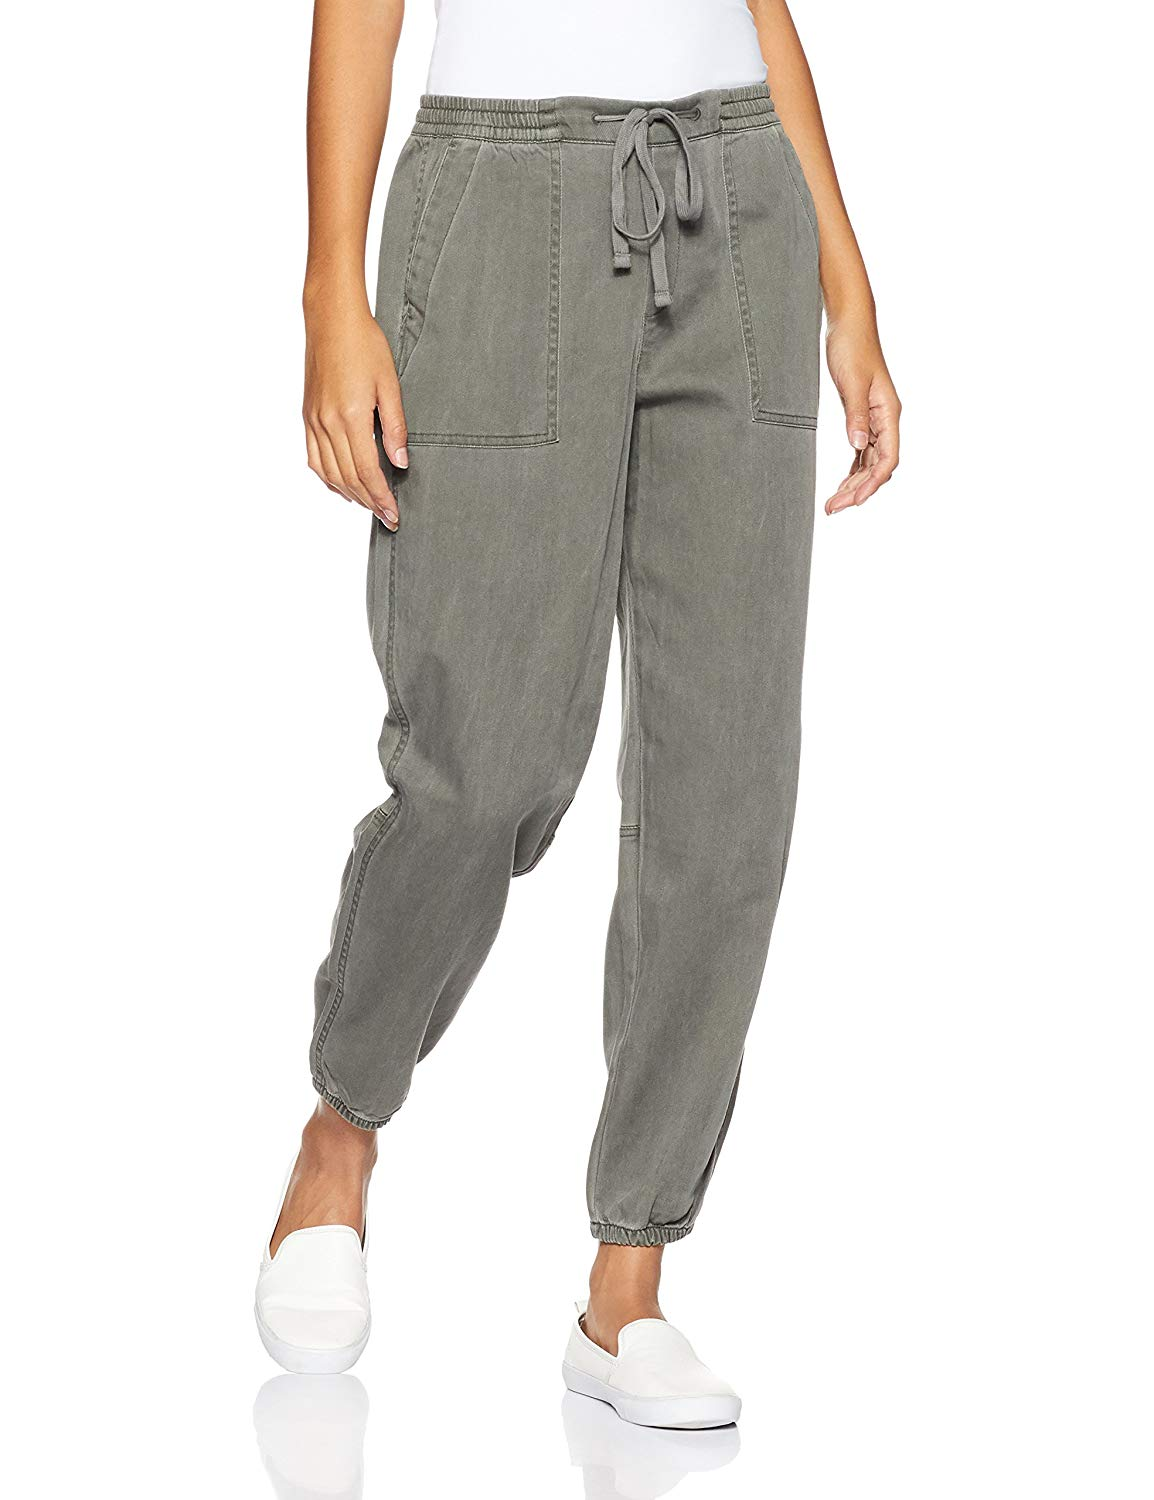 GAP Women's Cotton Track Pants